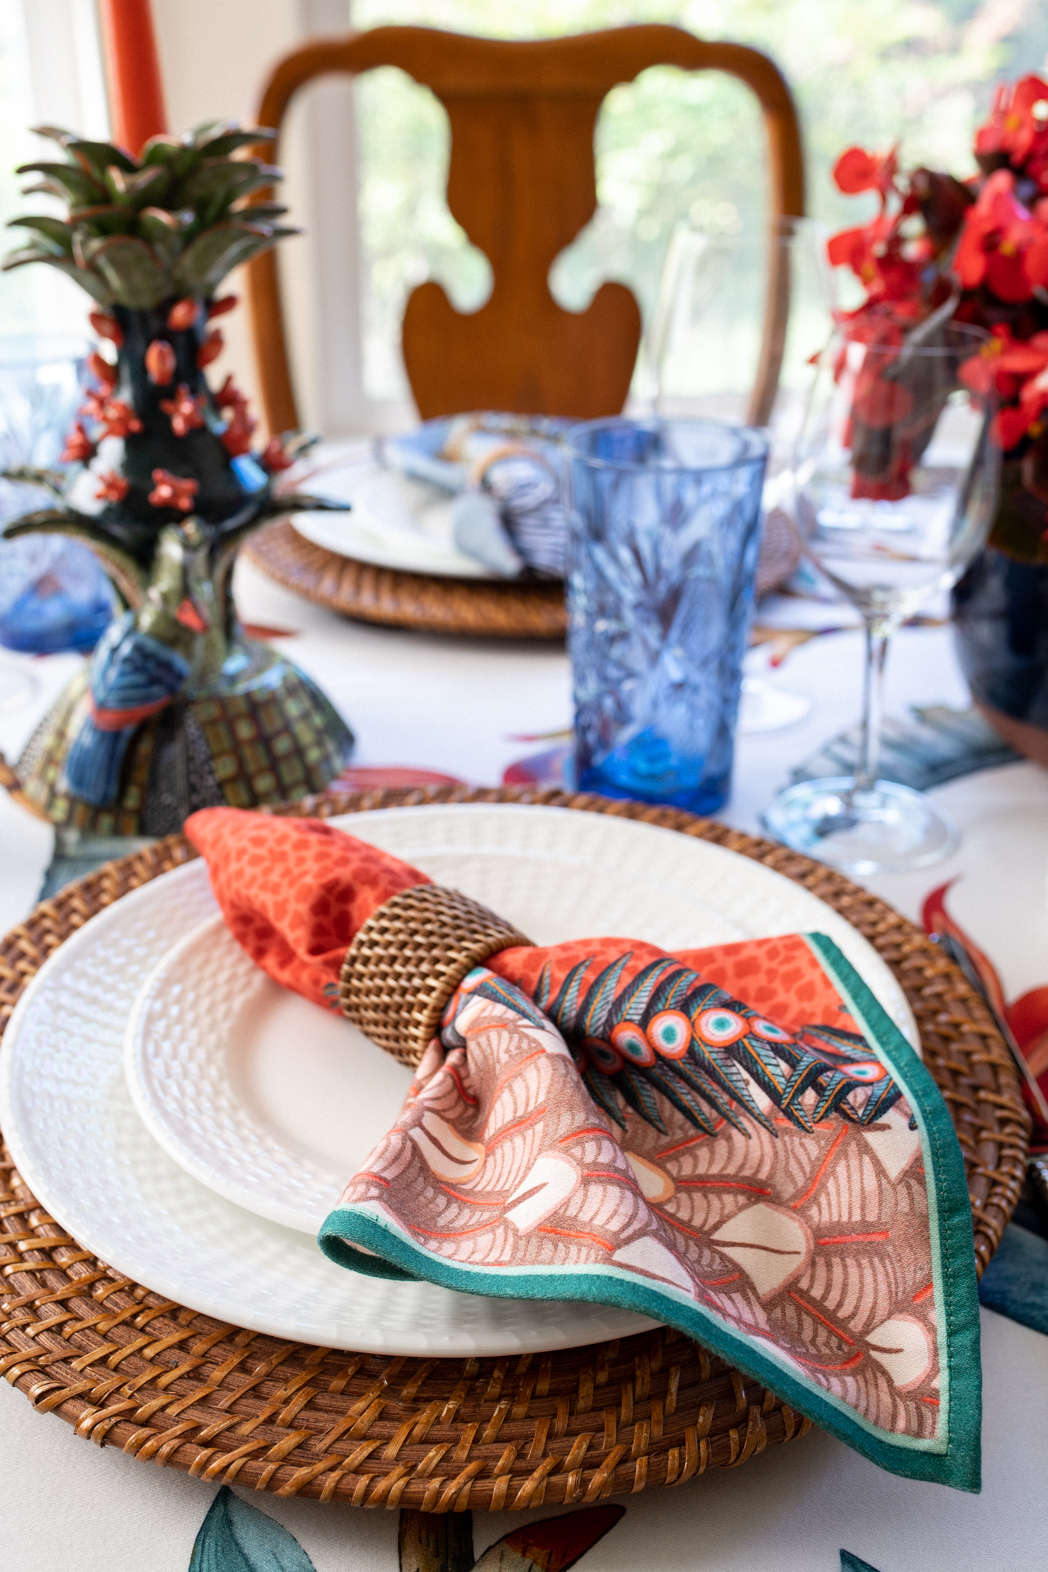 Stacie Flinner Ardmore Table Setting-16.jpg